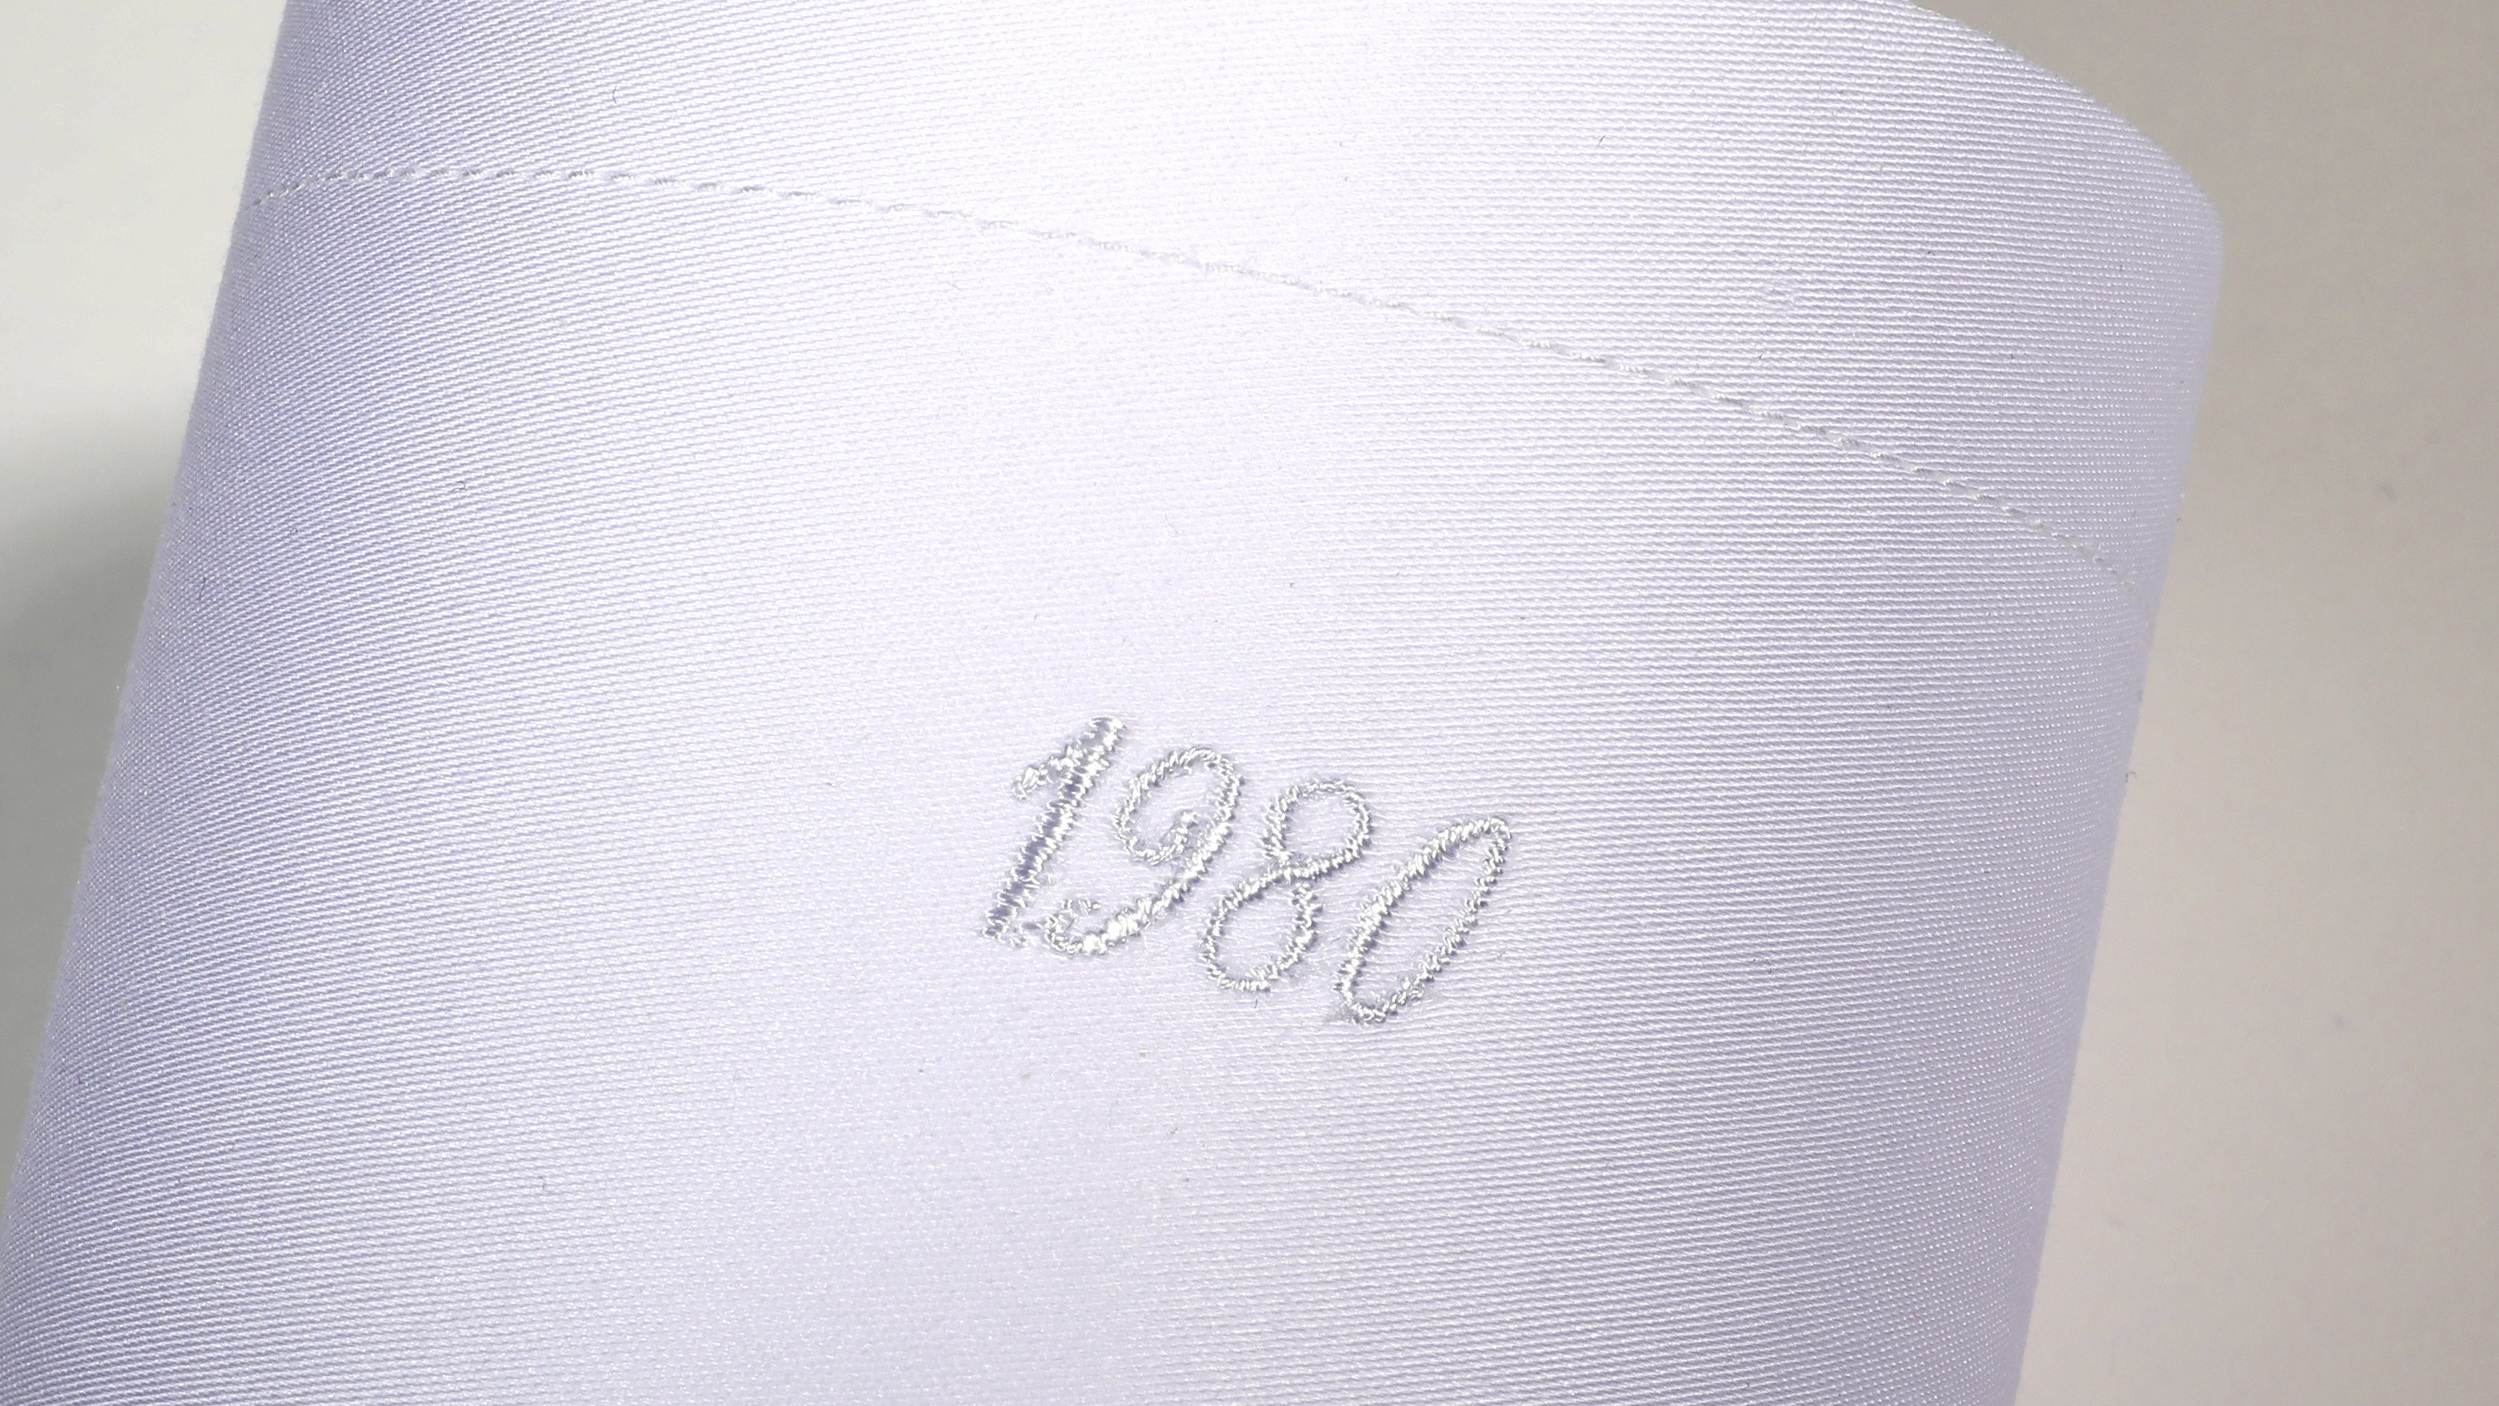 Personalization - Add a personal touch with monograming for a truly one of a kind piece.